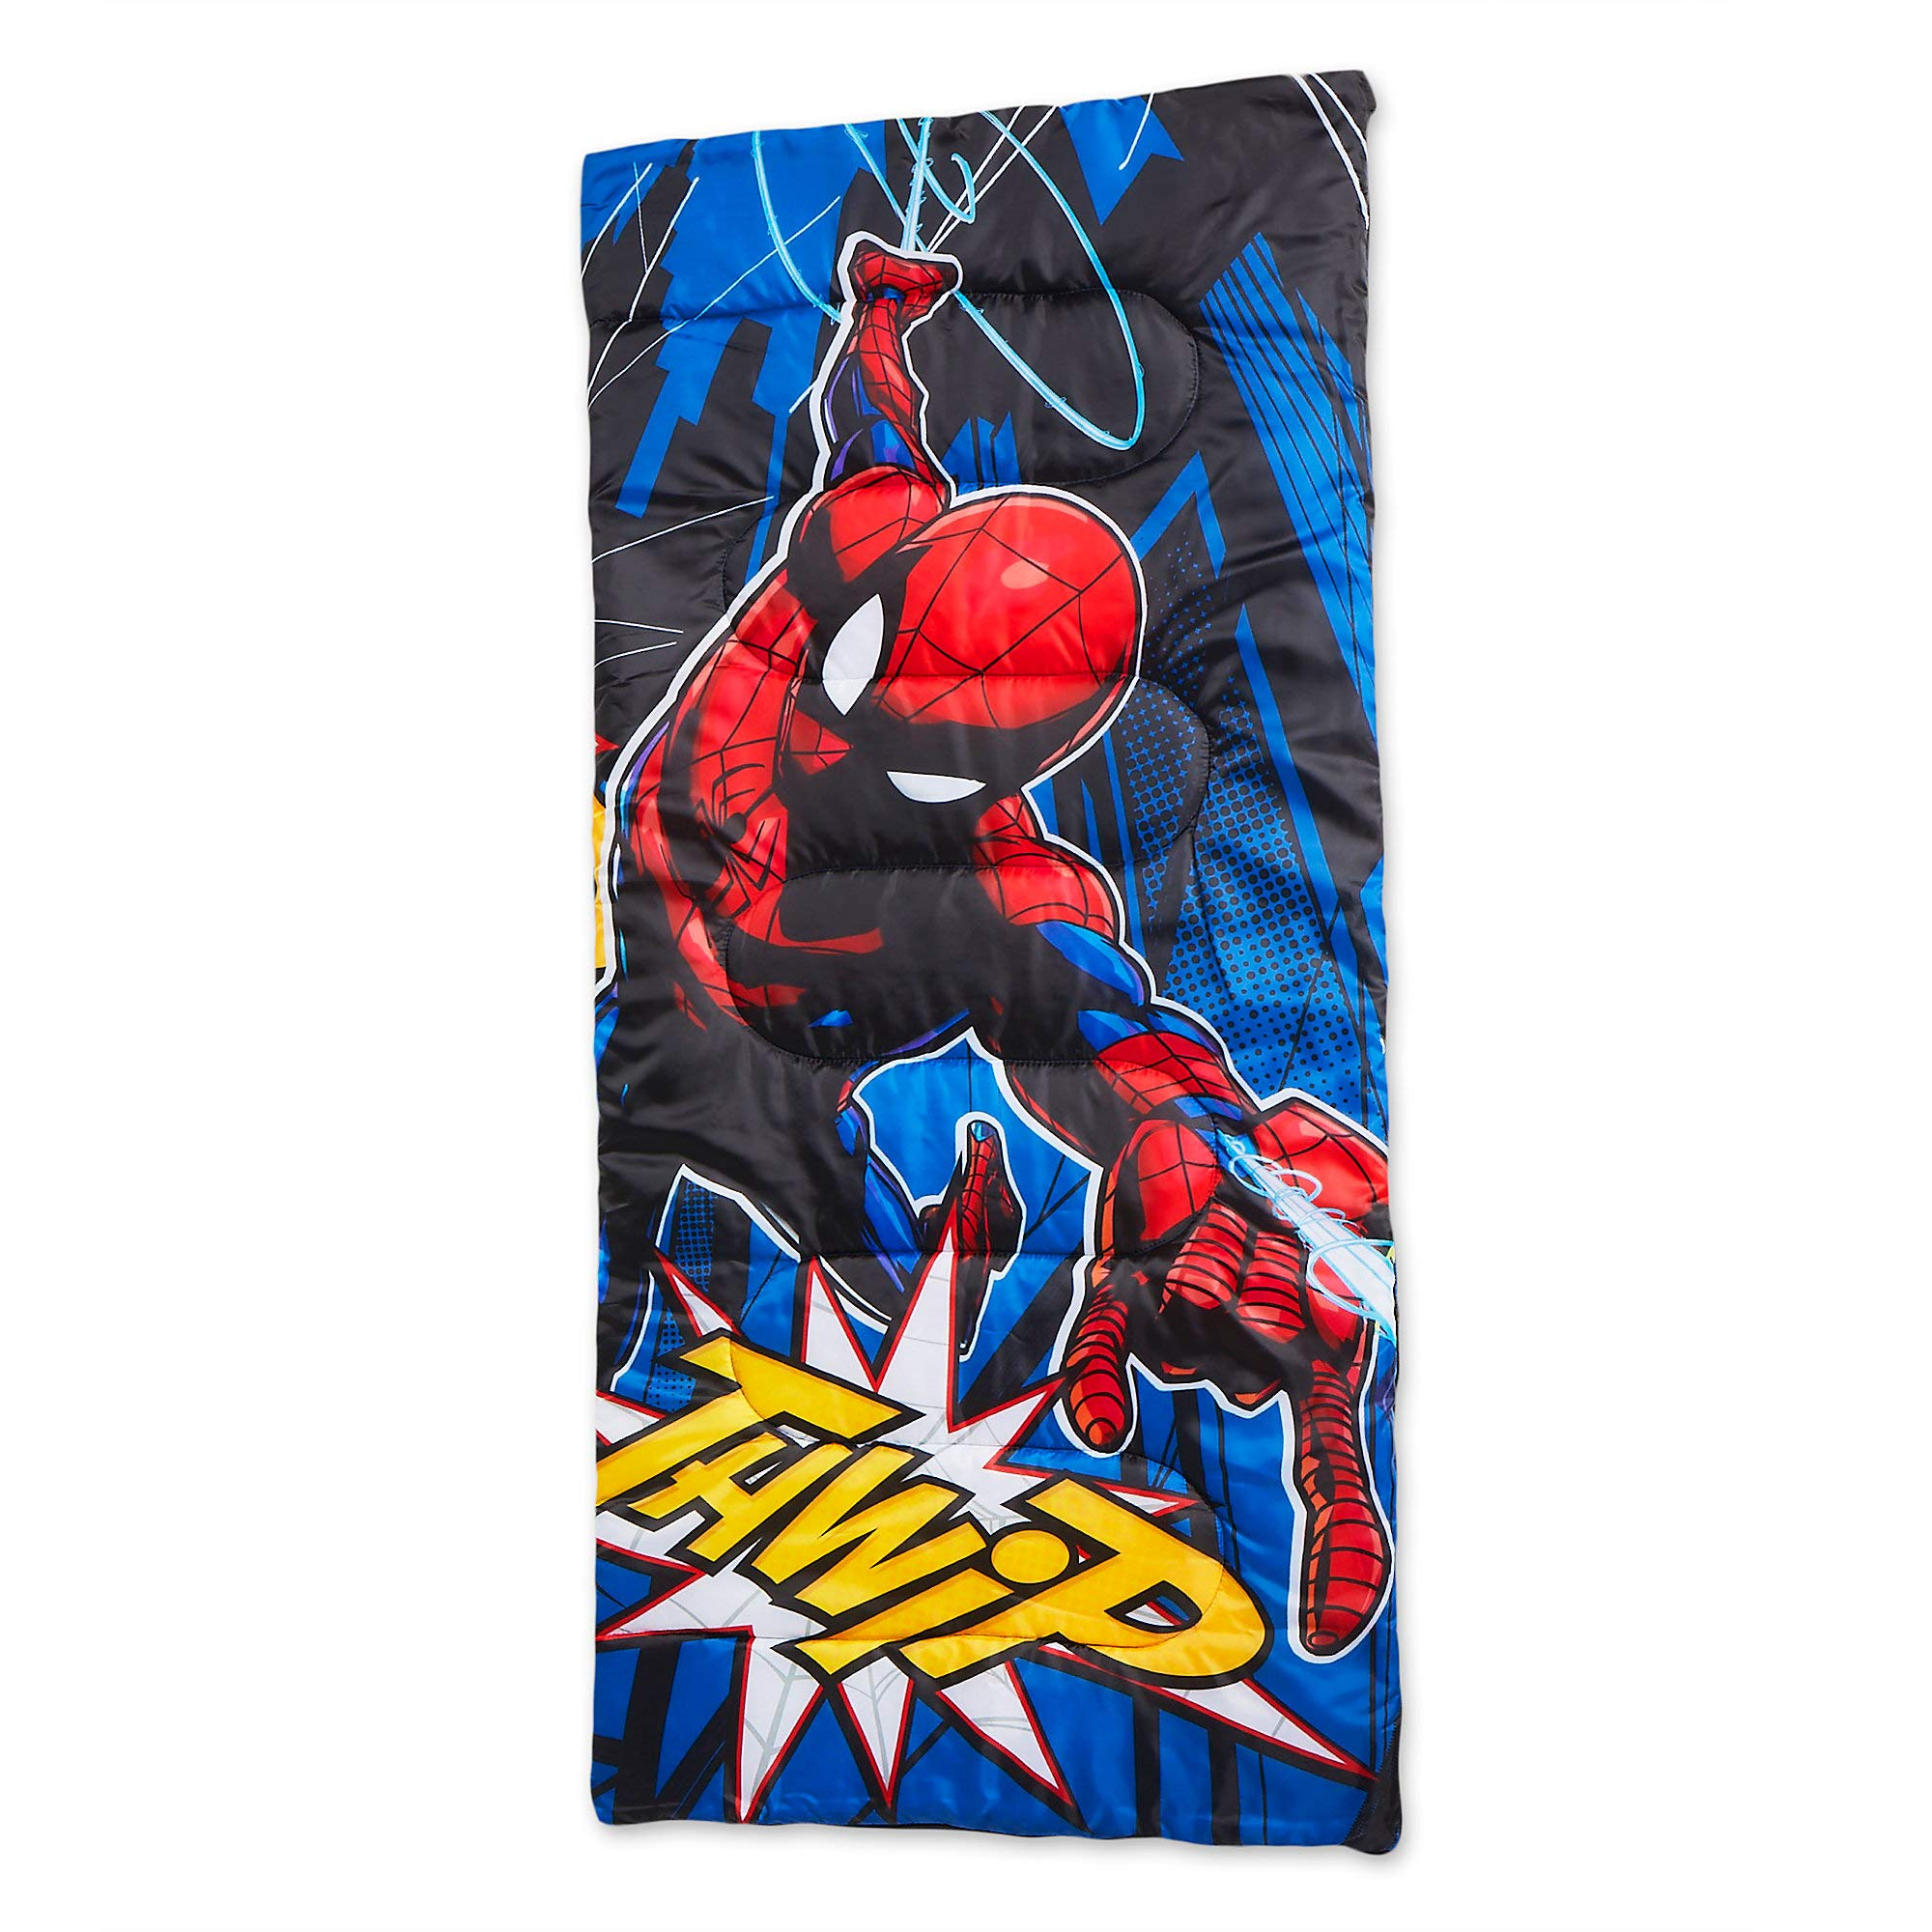 Marvel Spider-Man Sleeping Bag for Kids